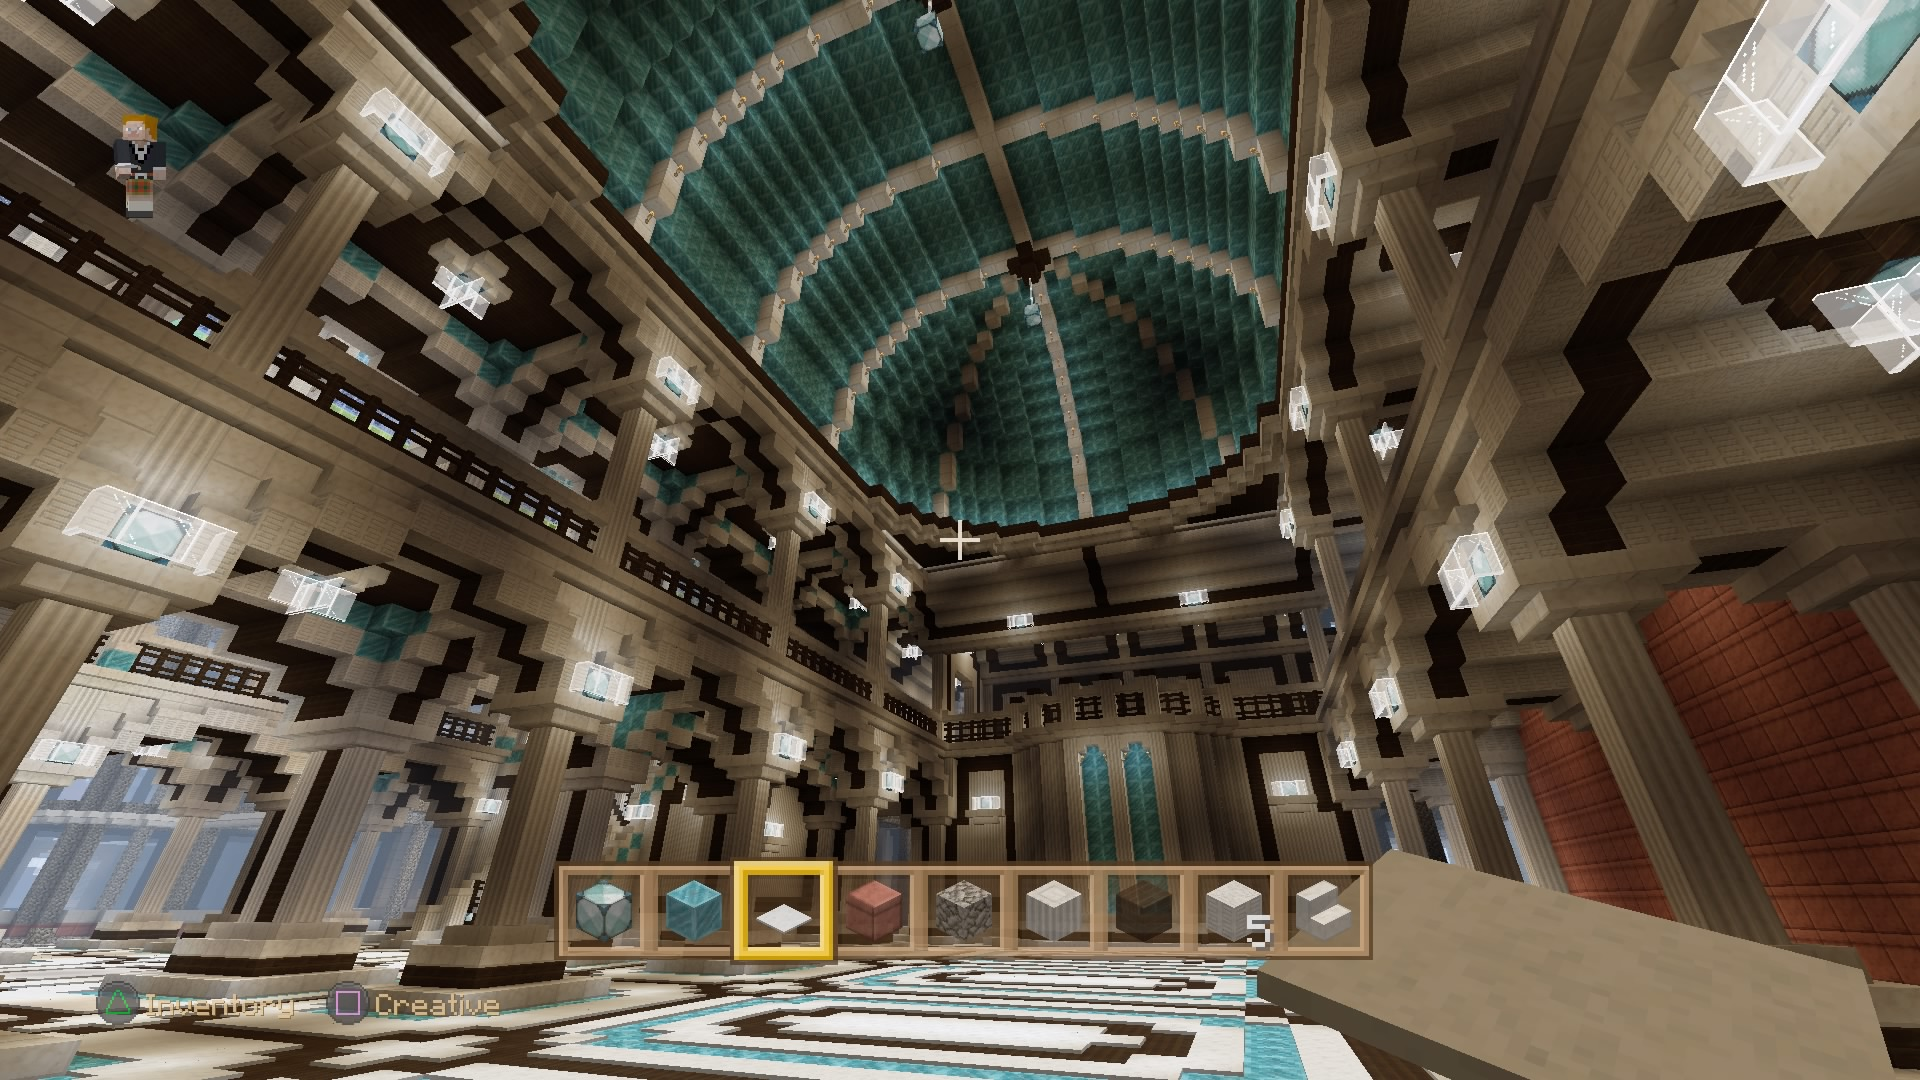 Fantasy Castle Epic Mega Build By Ajp Creative Mode Minecraft Java Edition Minecraft Forum Minecraft Forum